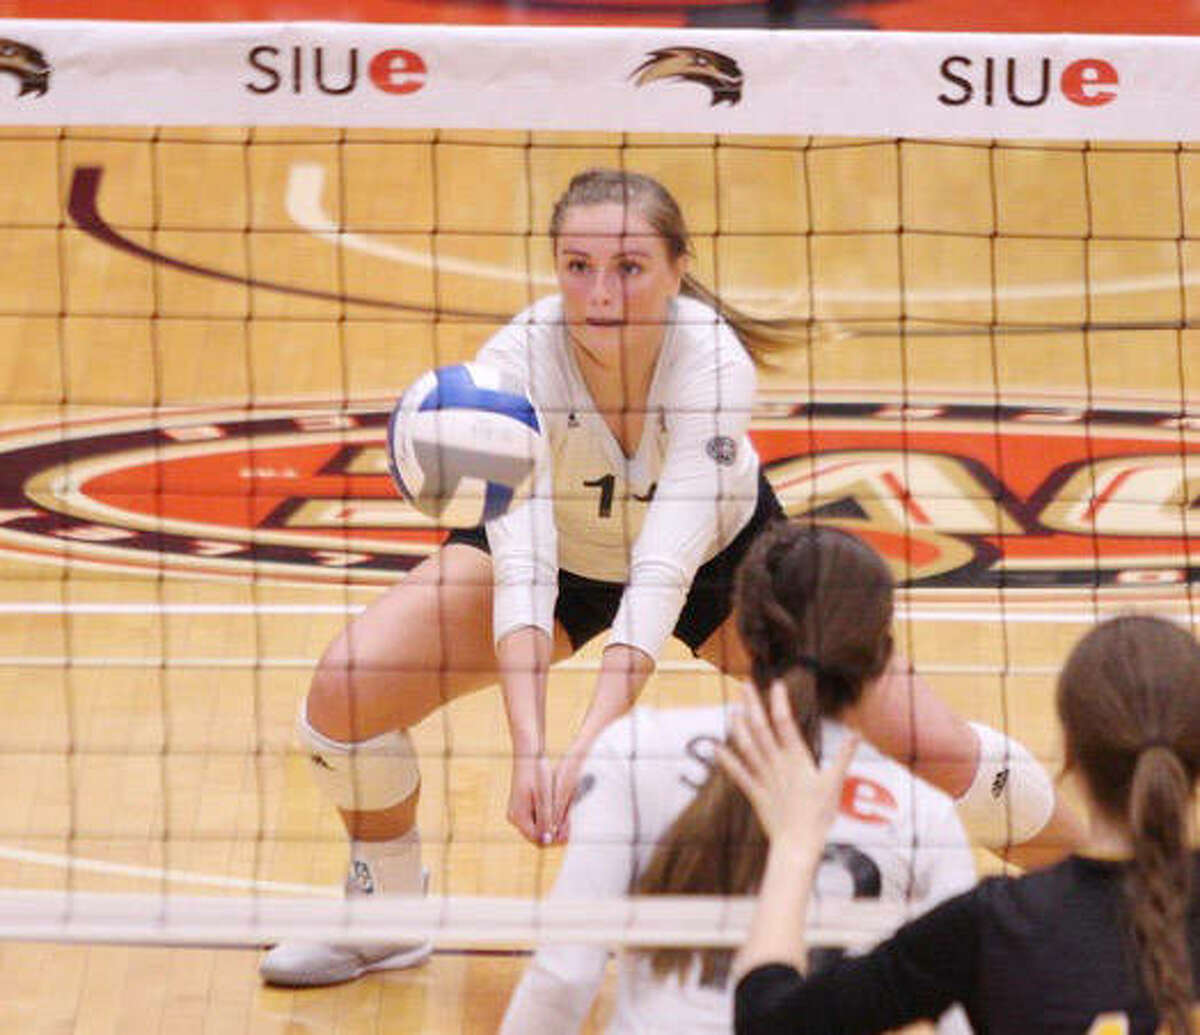 SIUE senior Rachel McDonald has earned first-team All-Ohio Valley Conference honors. McDonald also appeared in the All-OVC second team last season. McDonald led the Cougars with 3.08 kills per set and hit for a .220 clip. McDonald also averaged 2.67 digs per set.